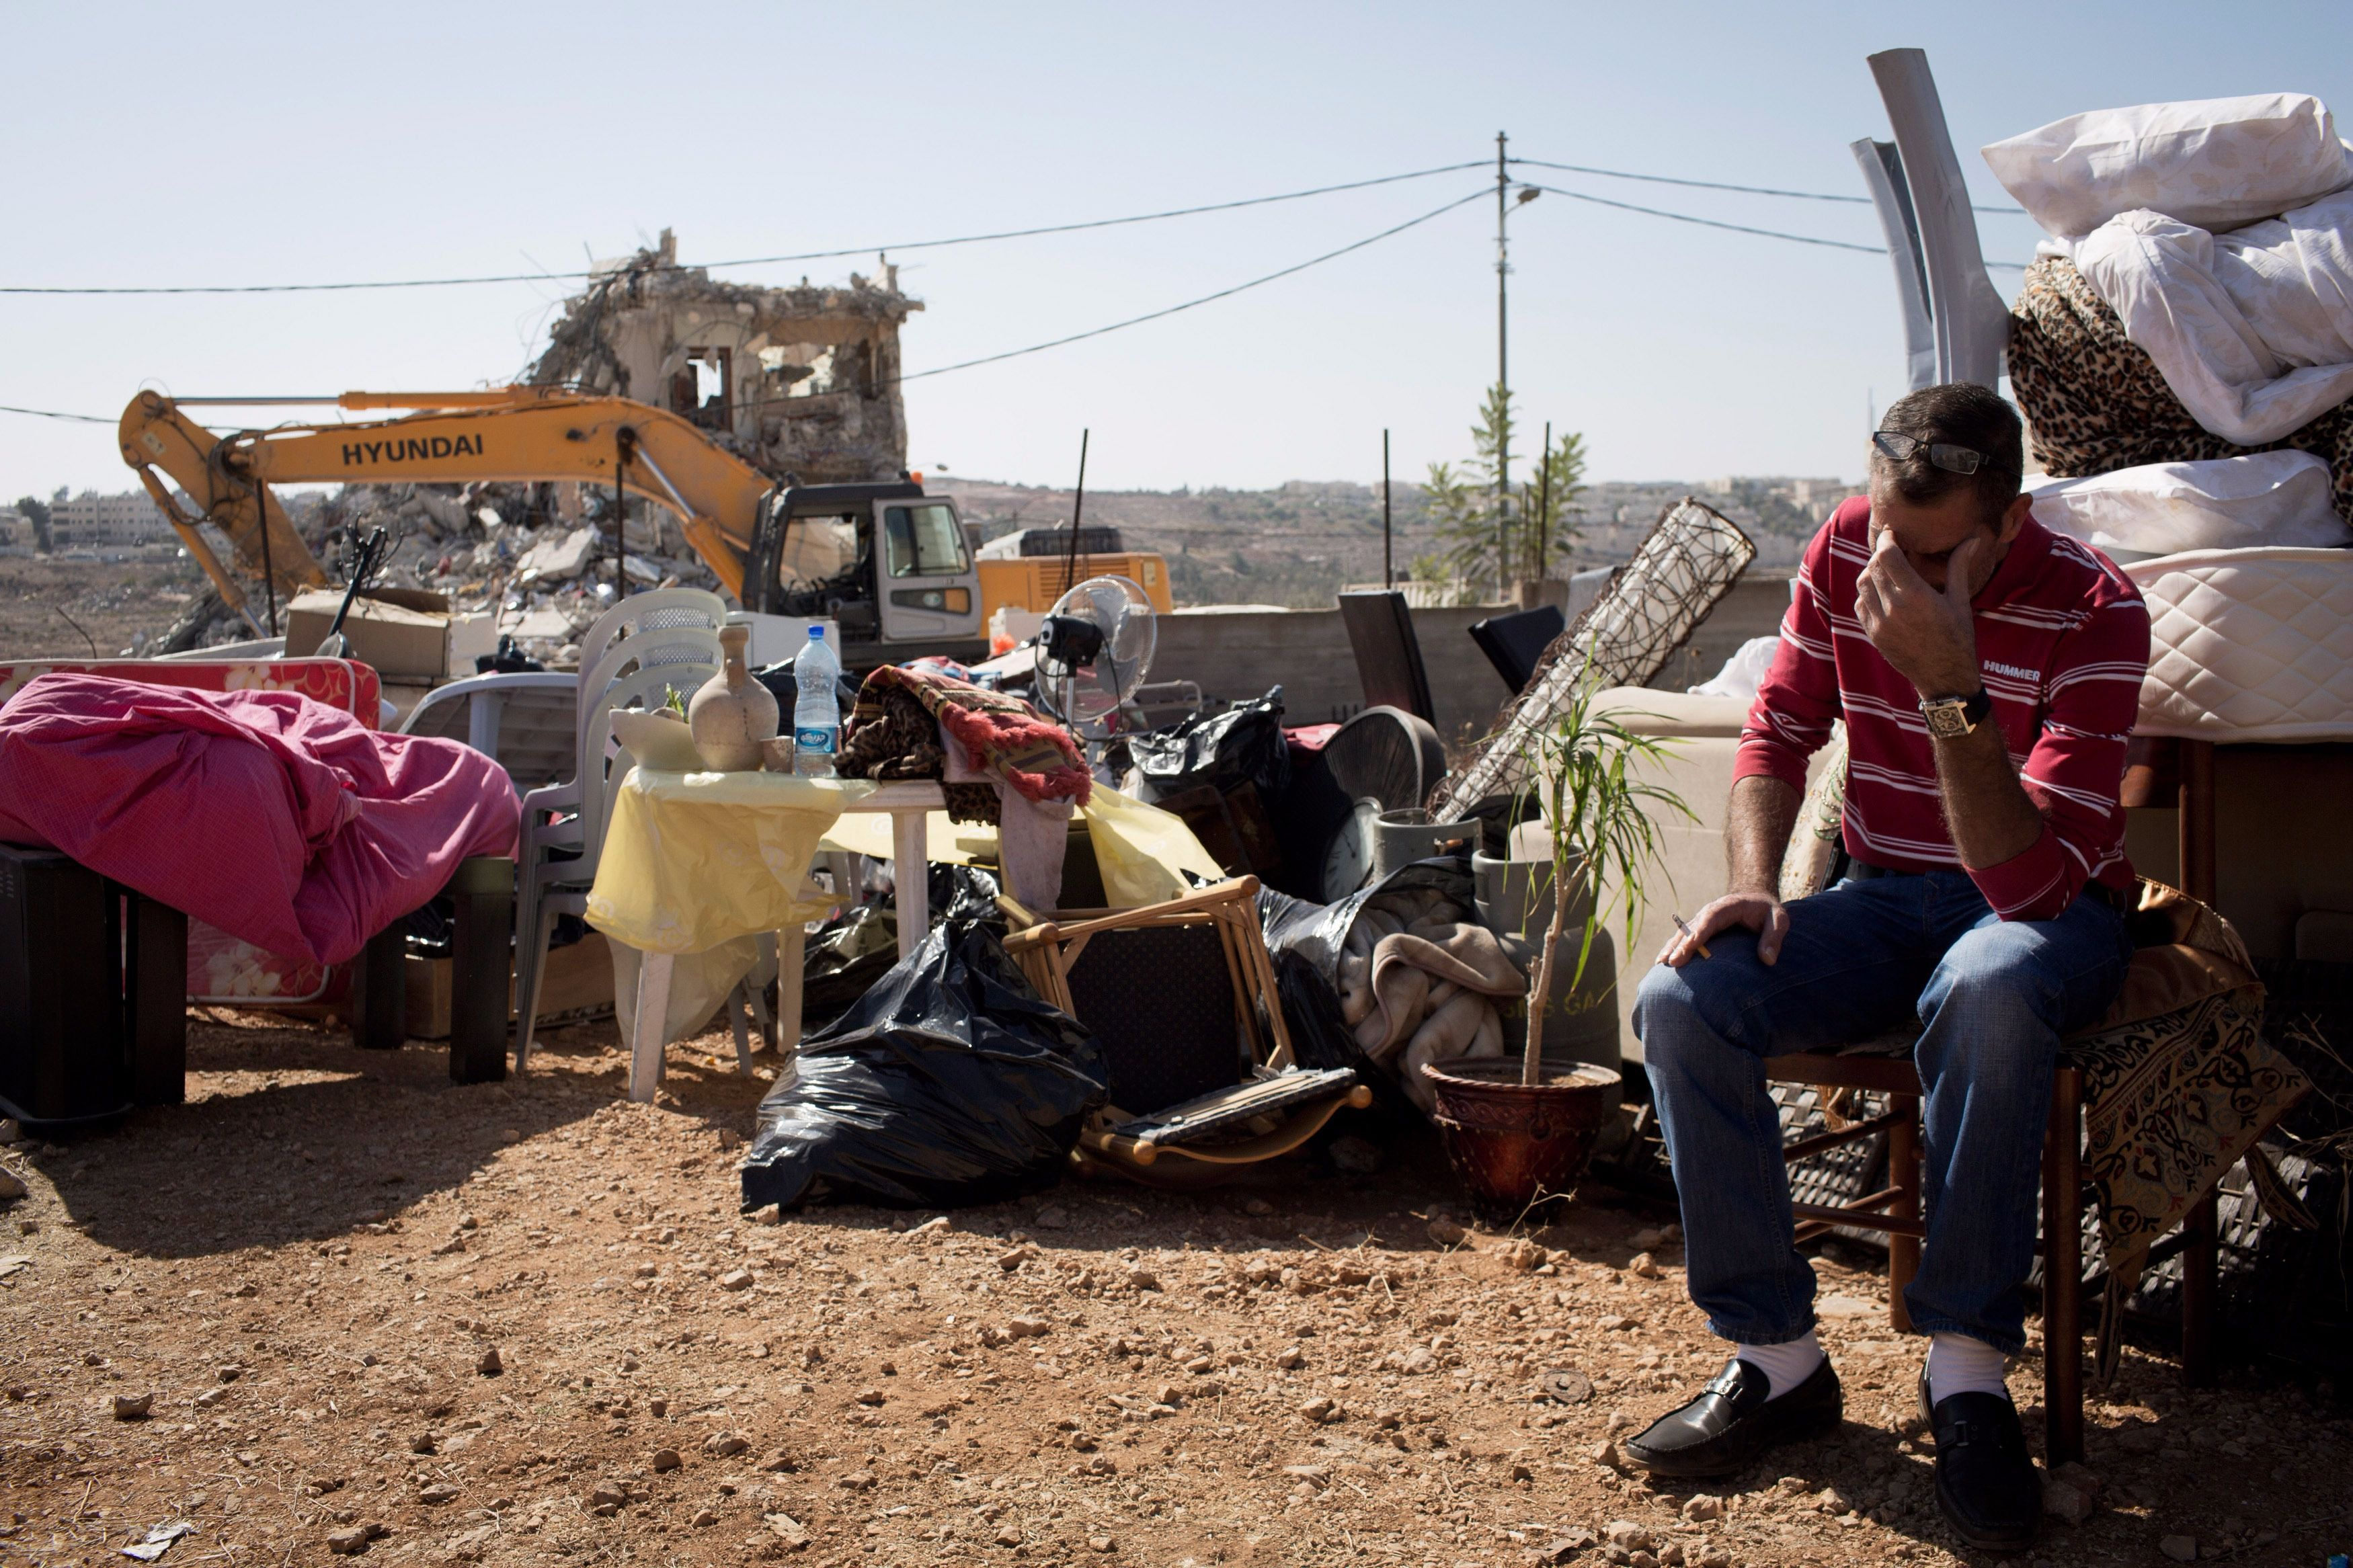 A 2013 home demolition in East Jerusalem